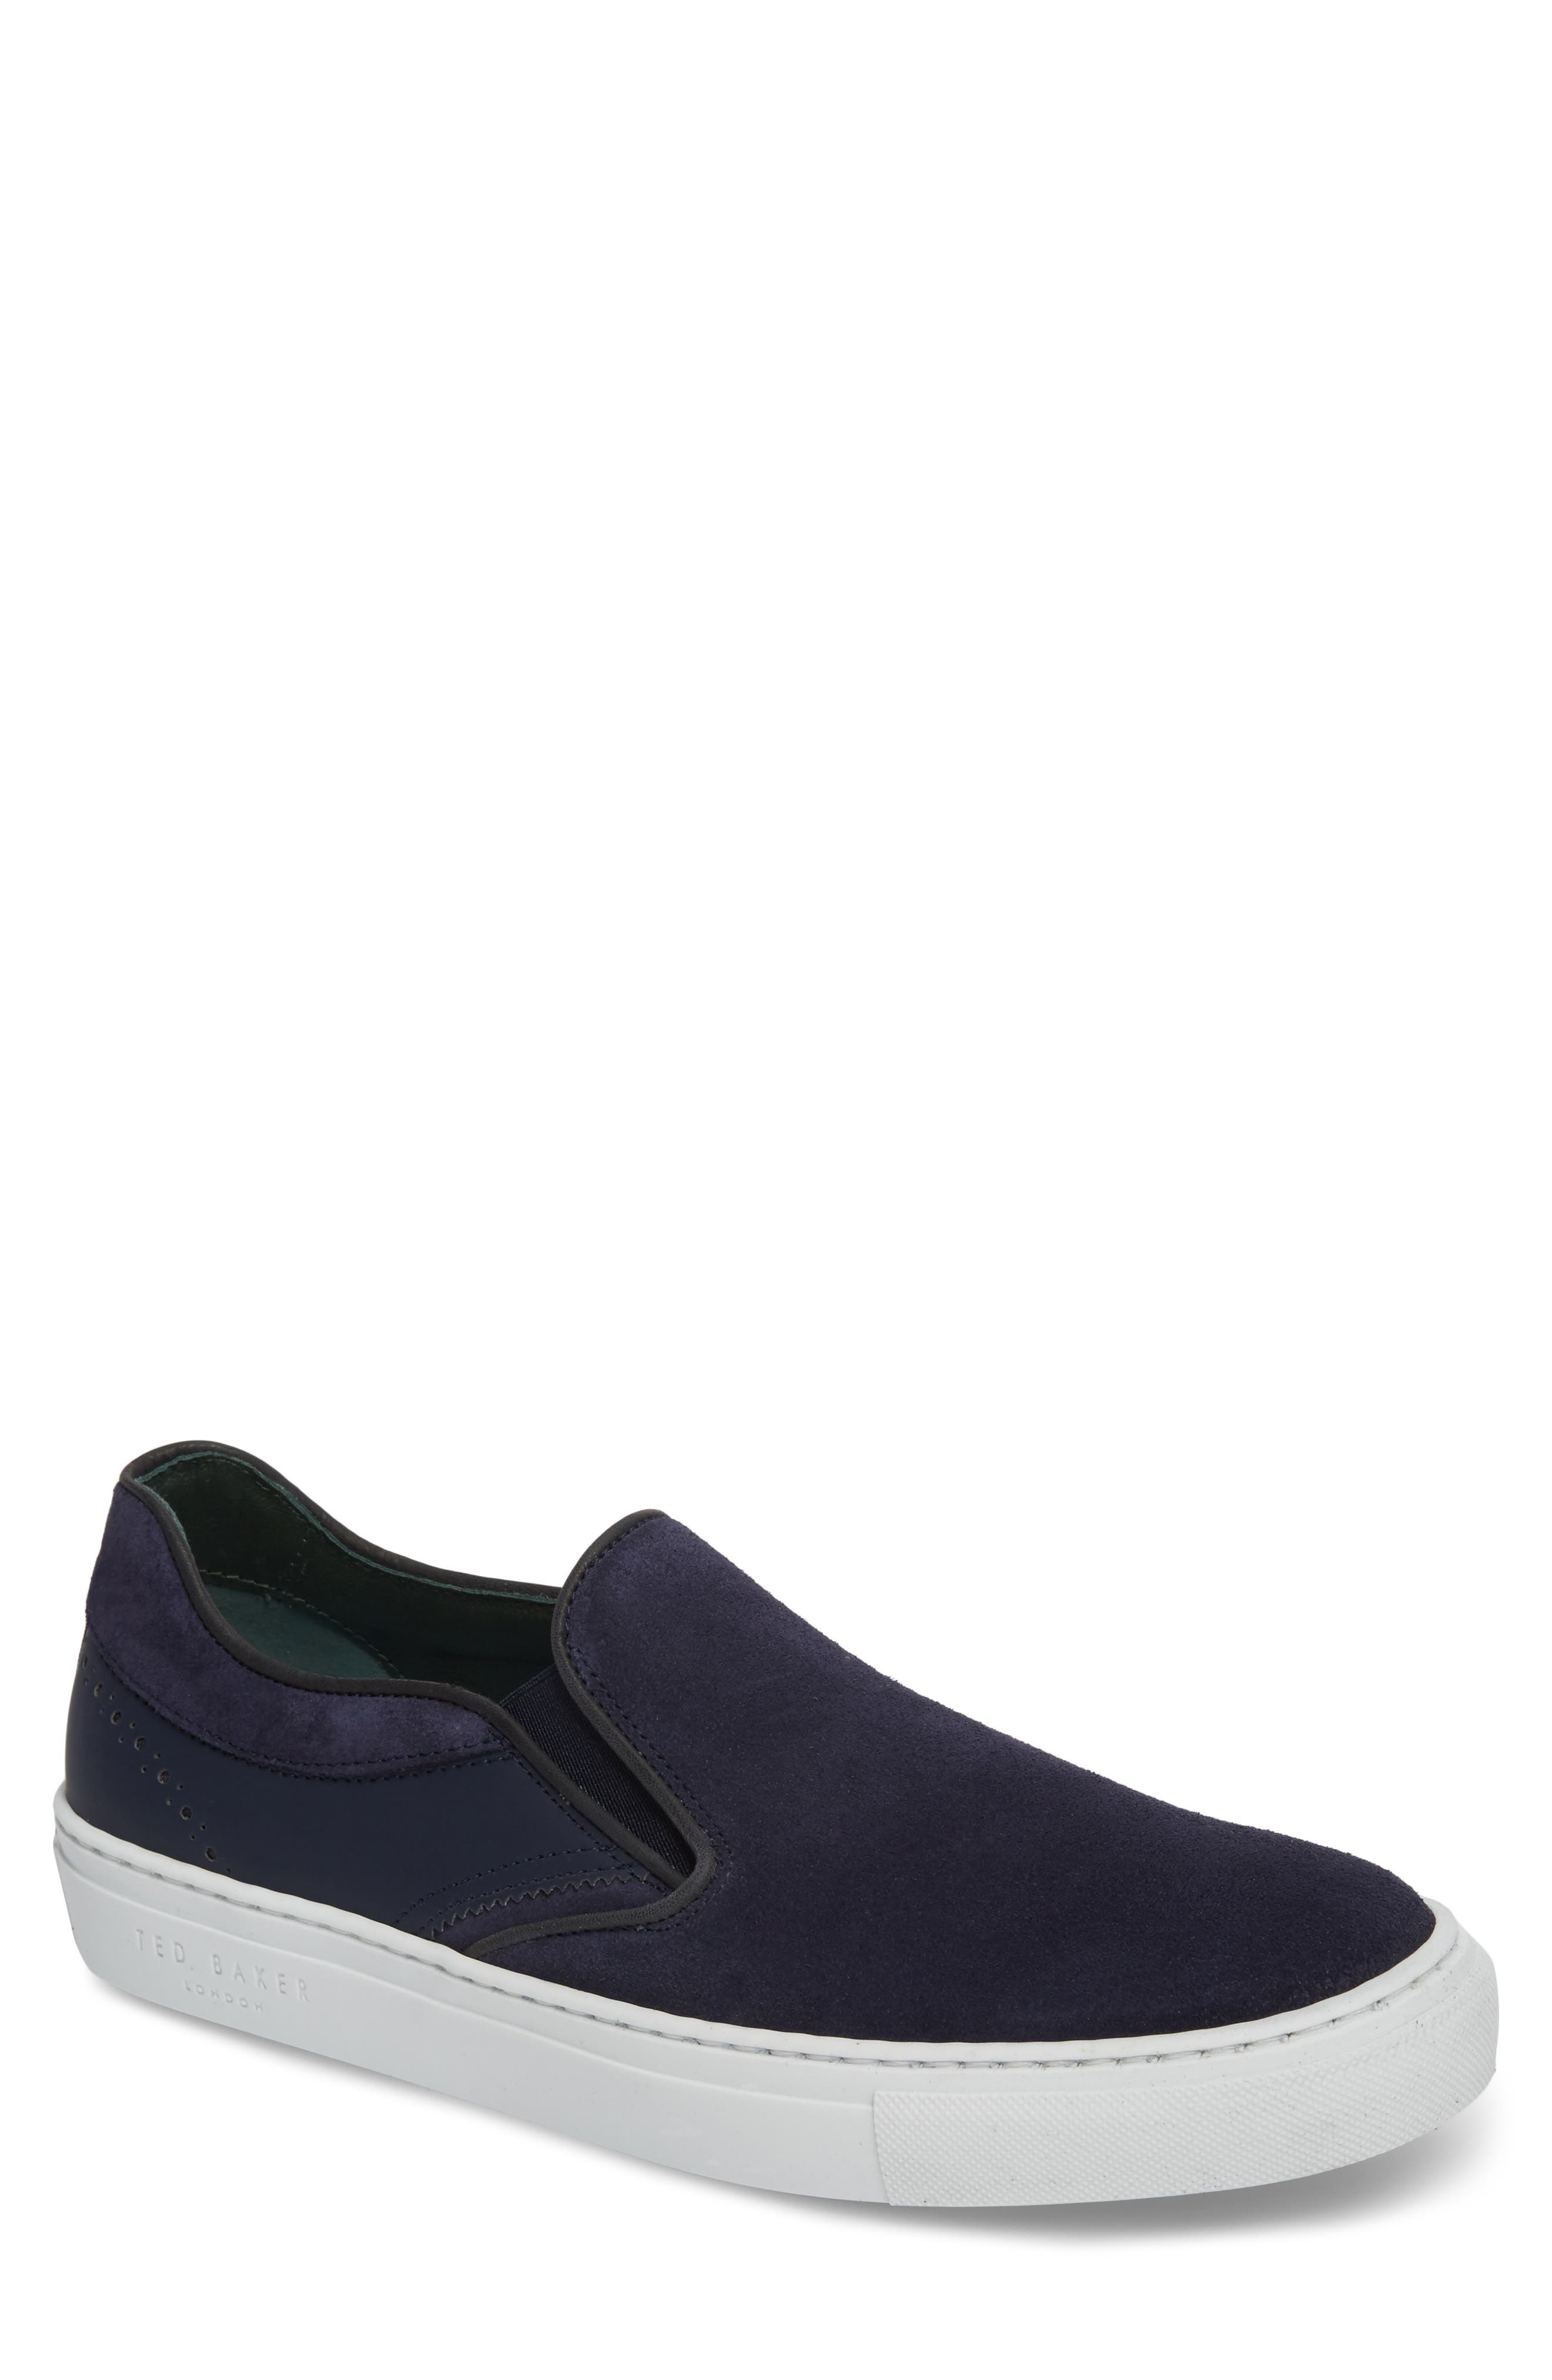 Reaine Brogued Slip-On Sneaker,                         Main,                         color, Dark Blue Leather